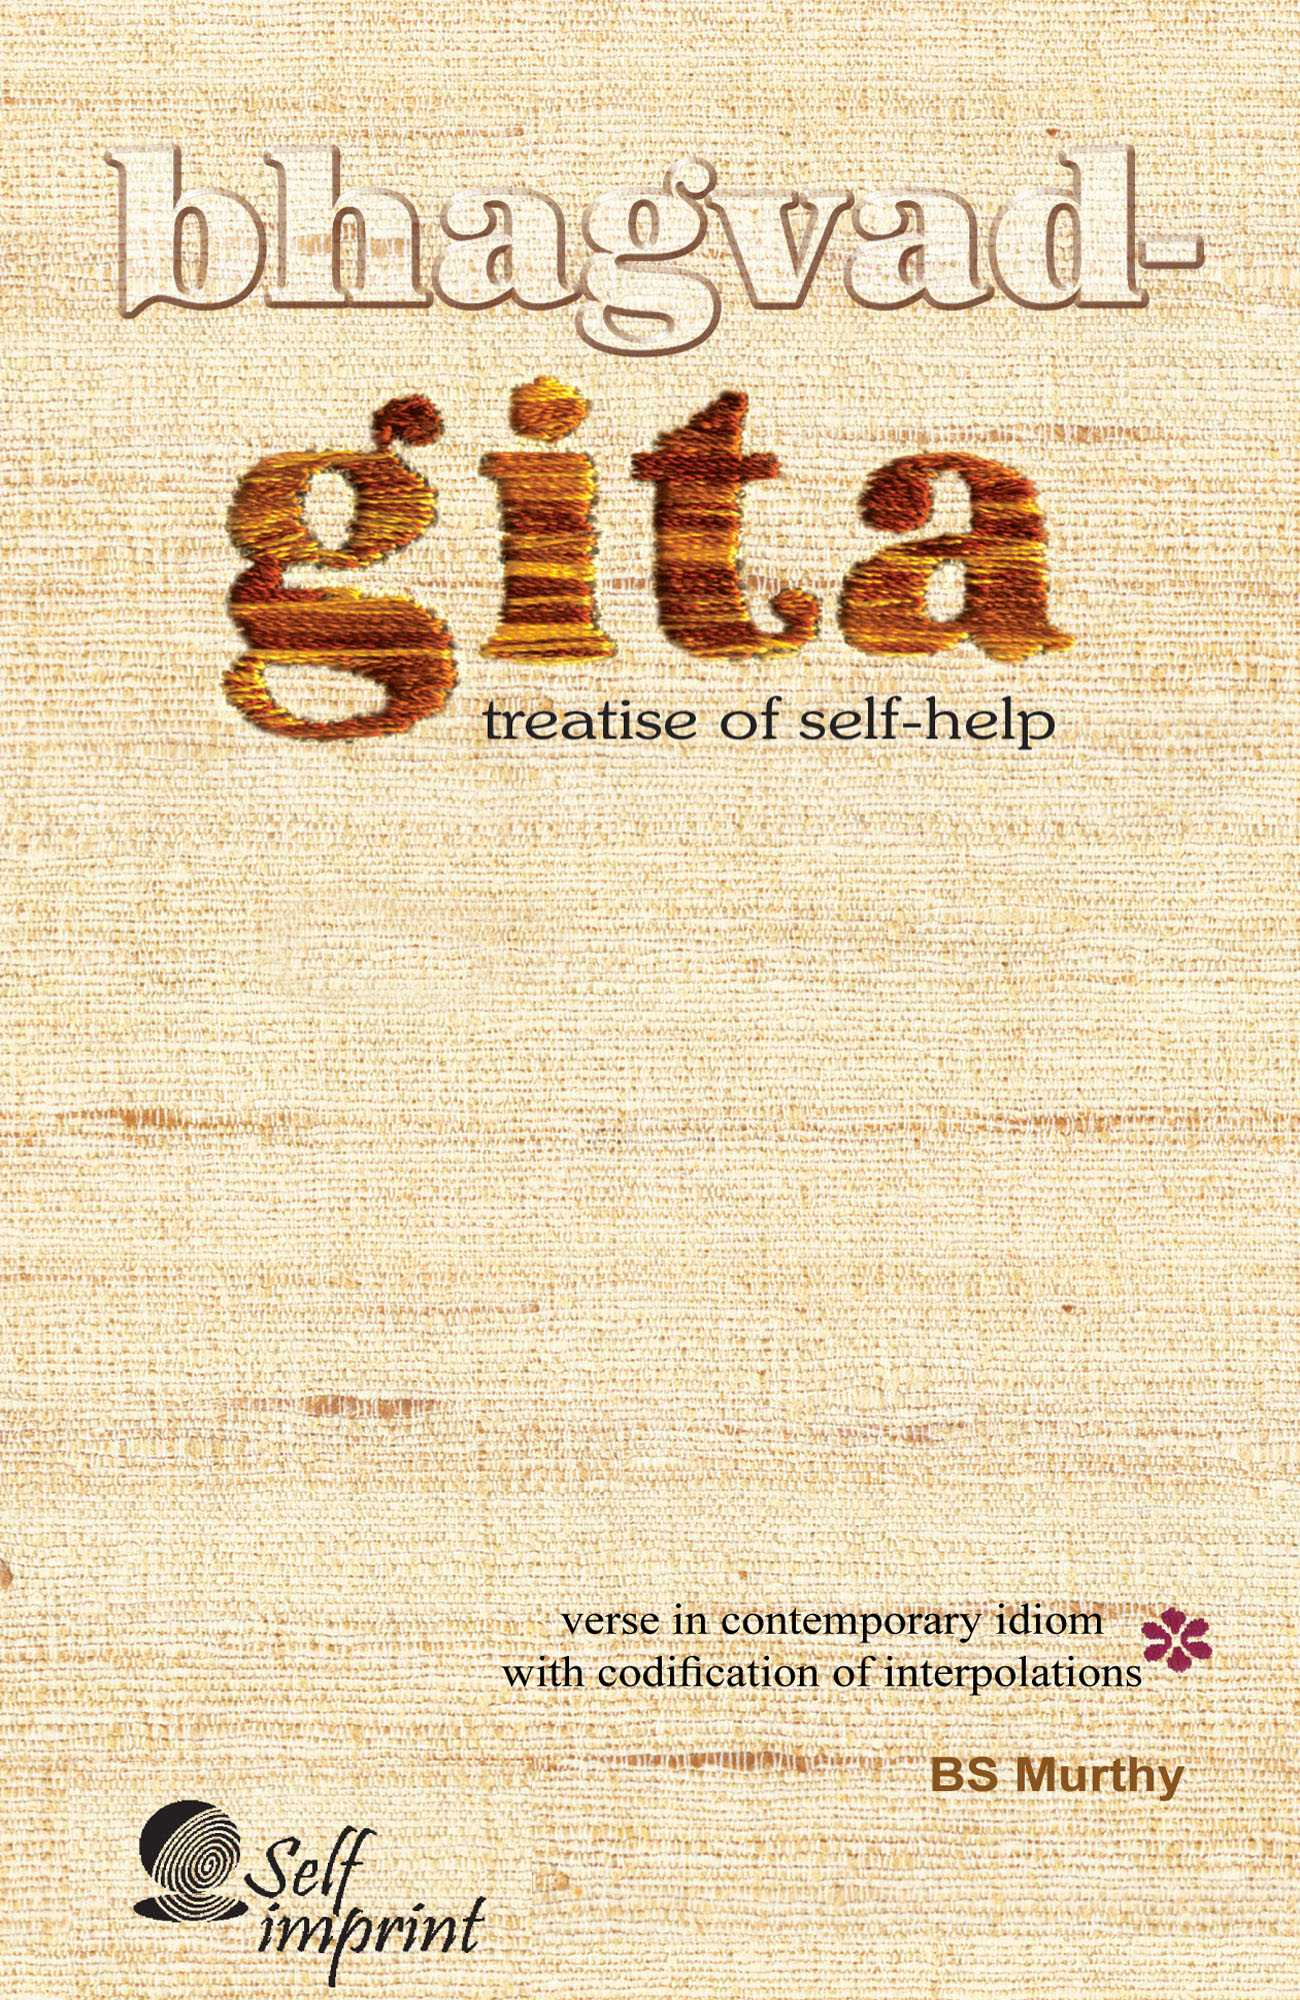 Bhagvad-Gita: Treatise of Self-help